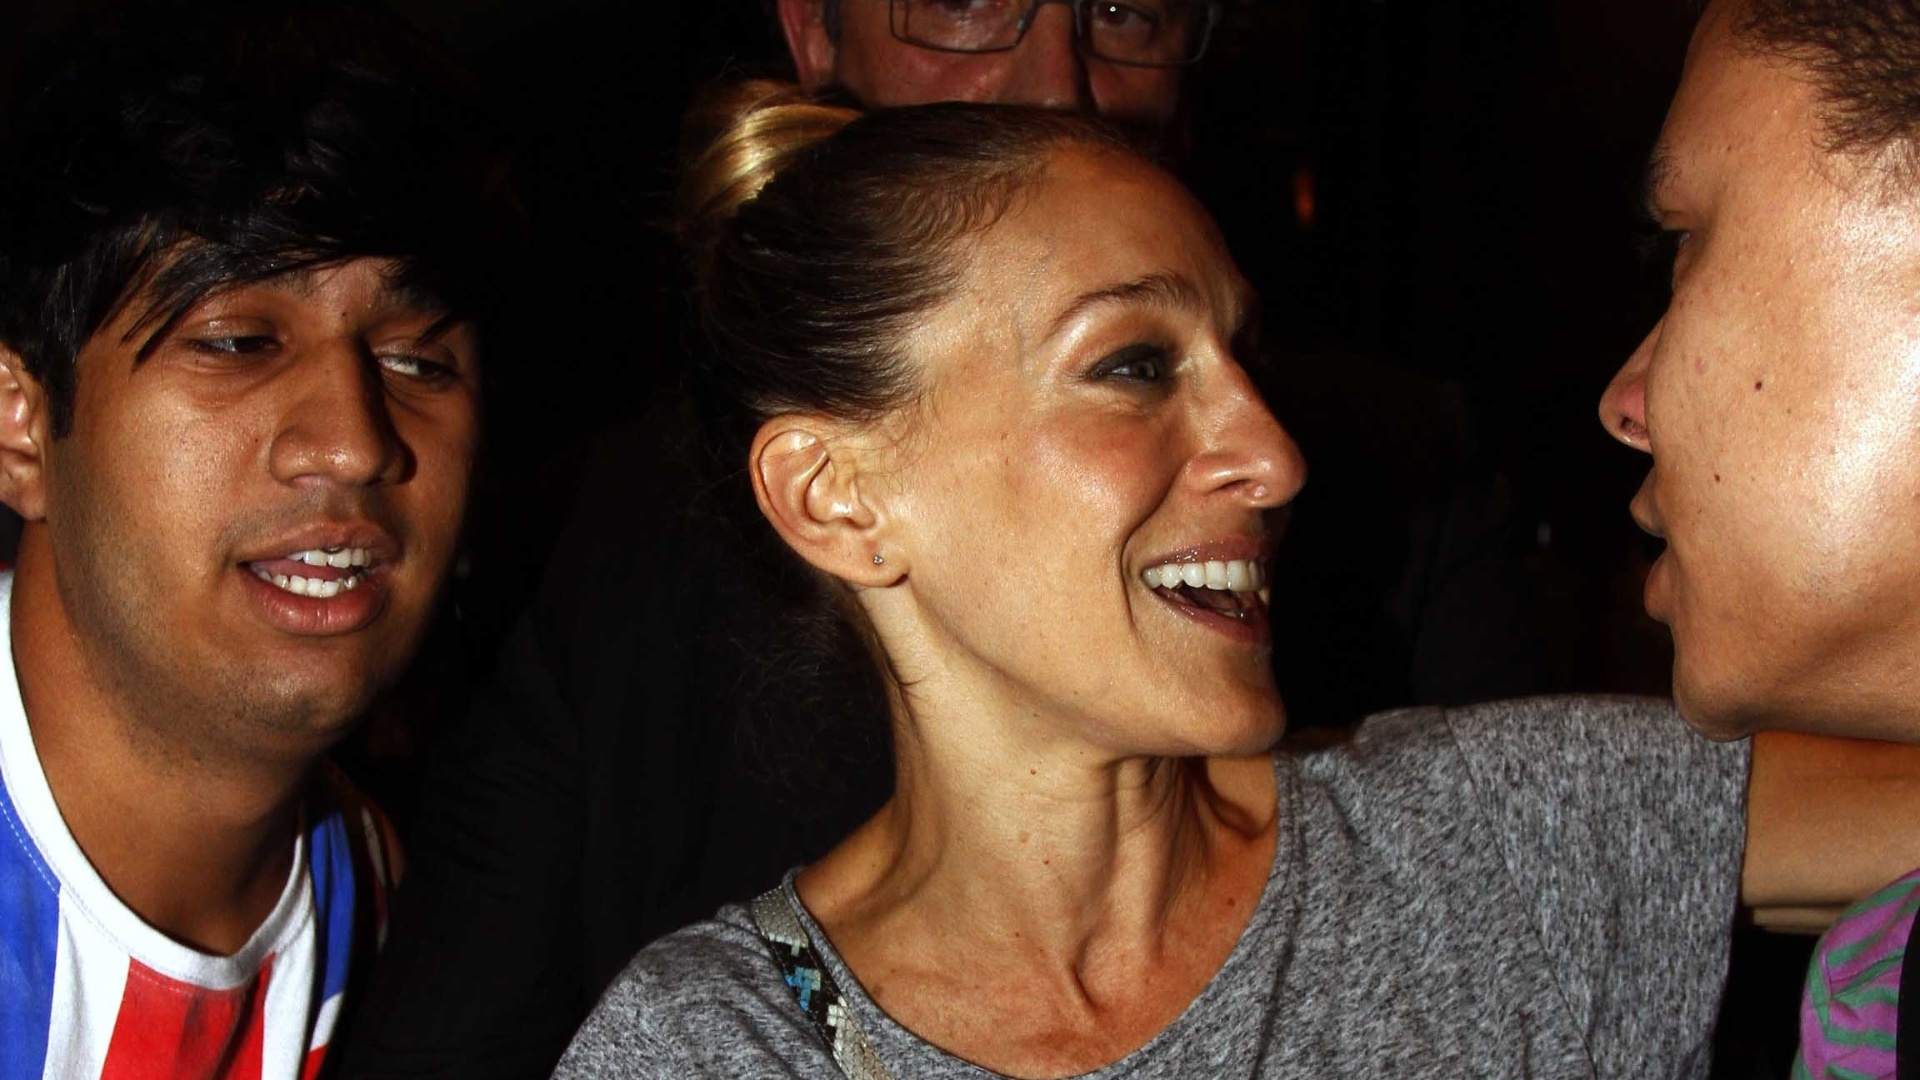 2.mai.2013 - A atriz Sarah Jessica Parker fala com fs na sada de churrascaria em So Paulo. A estrela da srie 